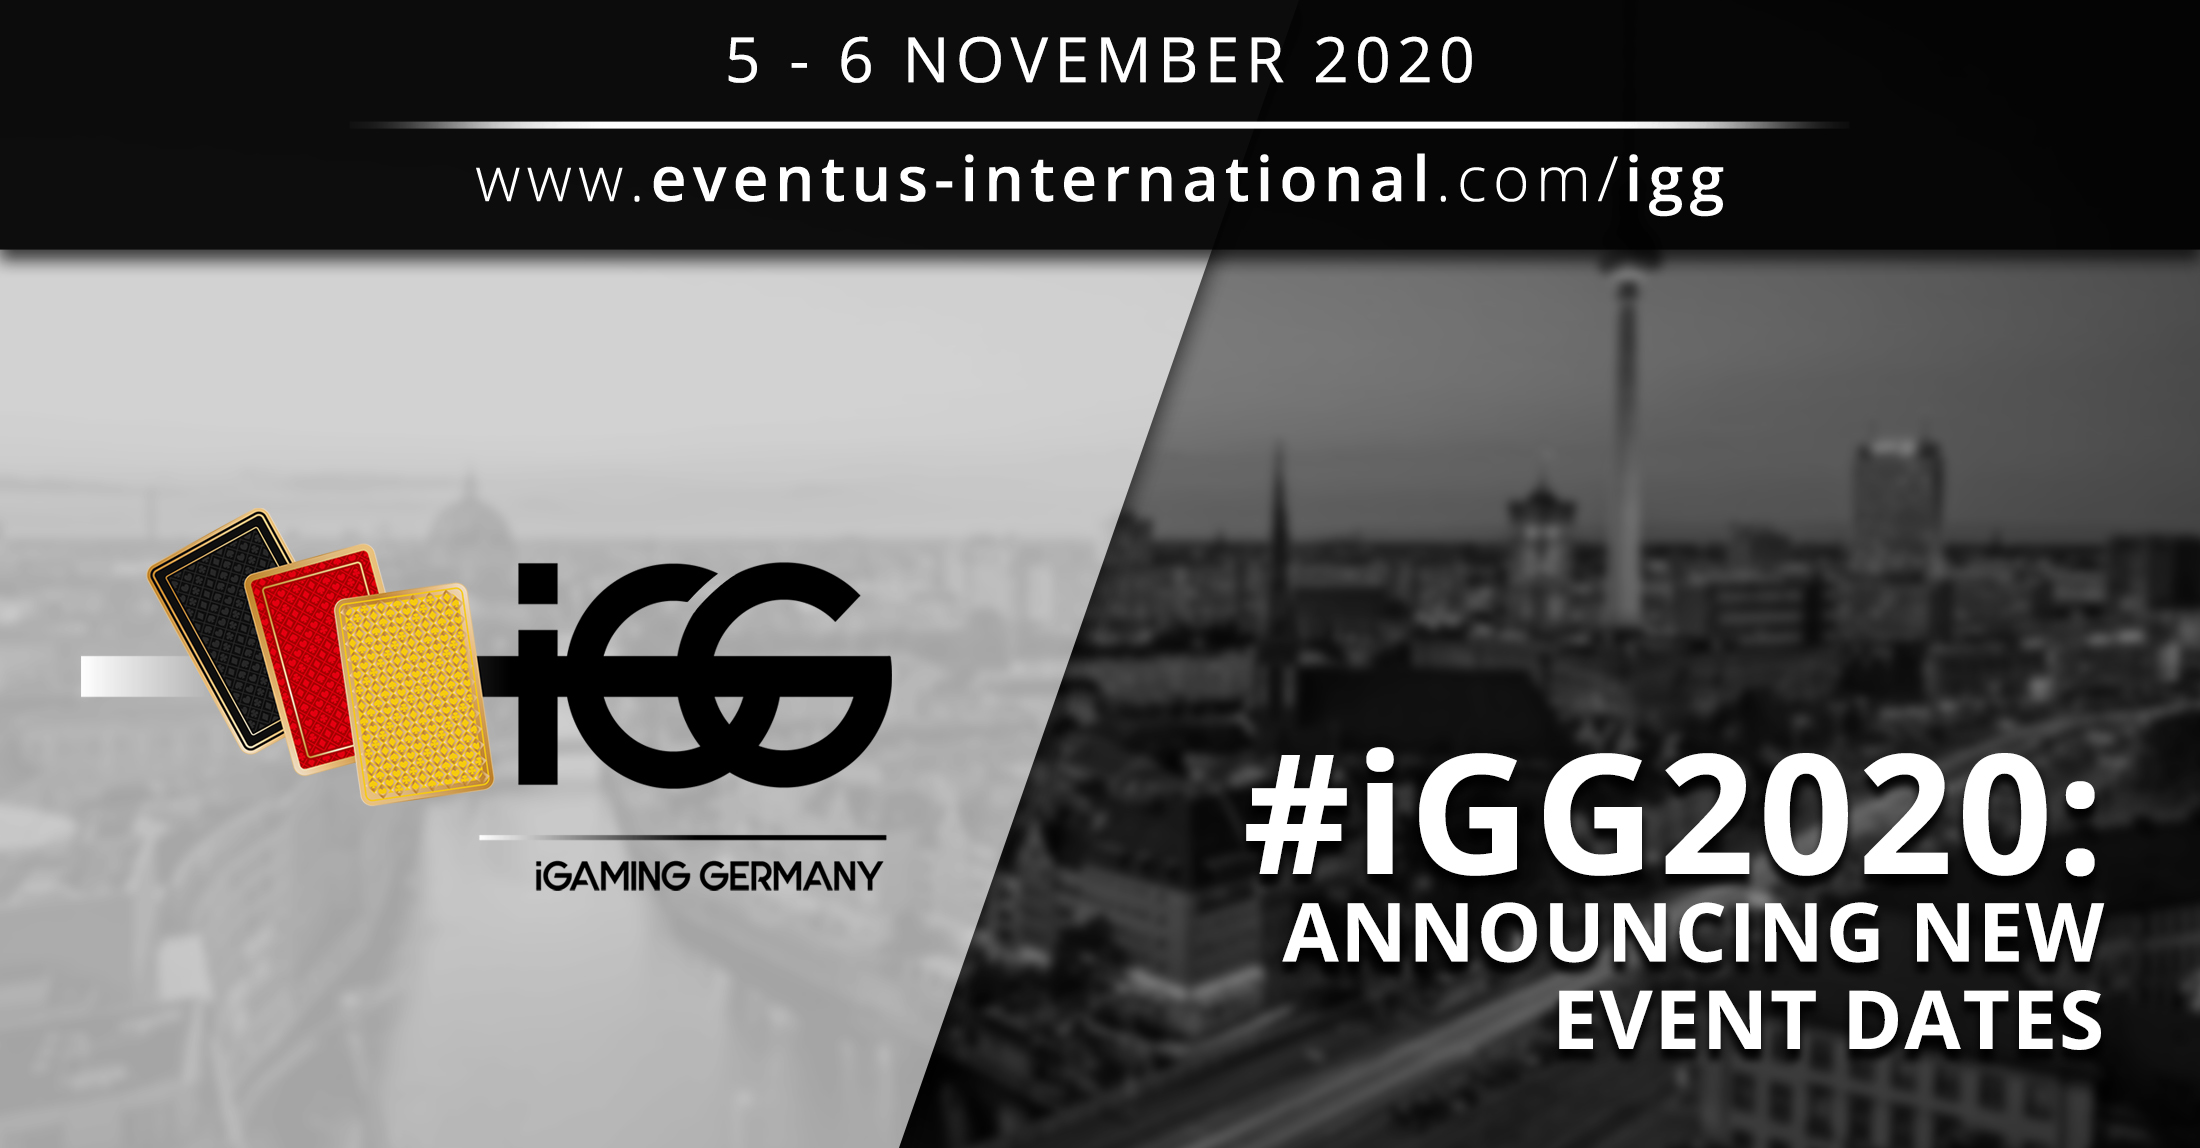 iGG Summit: Developments In Germany's Gaming Sector